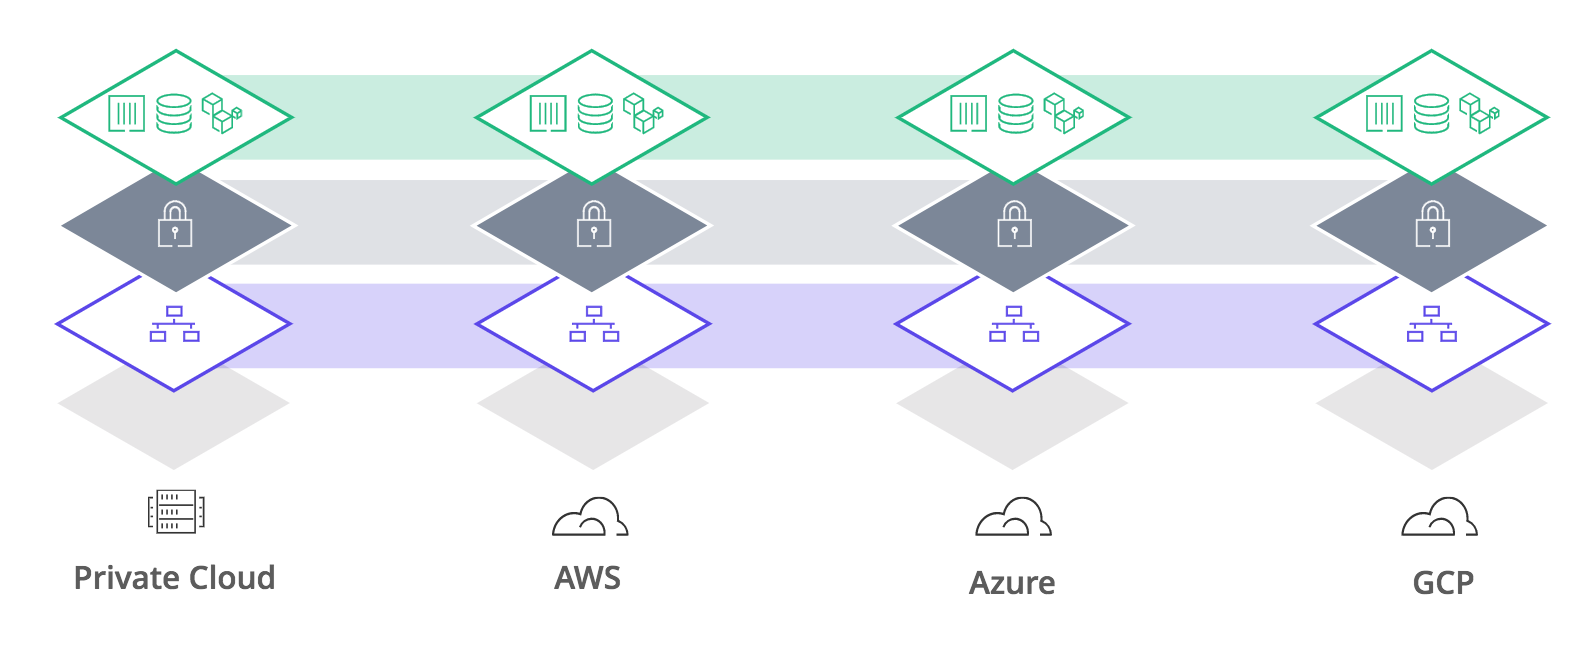 A consistent approach to security across distributed infrastructure